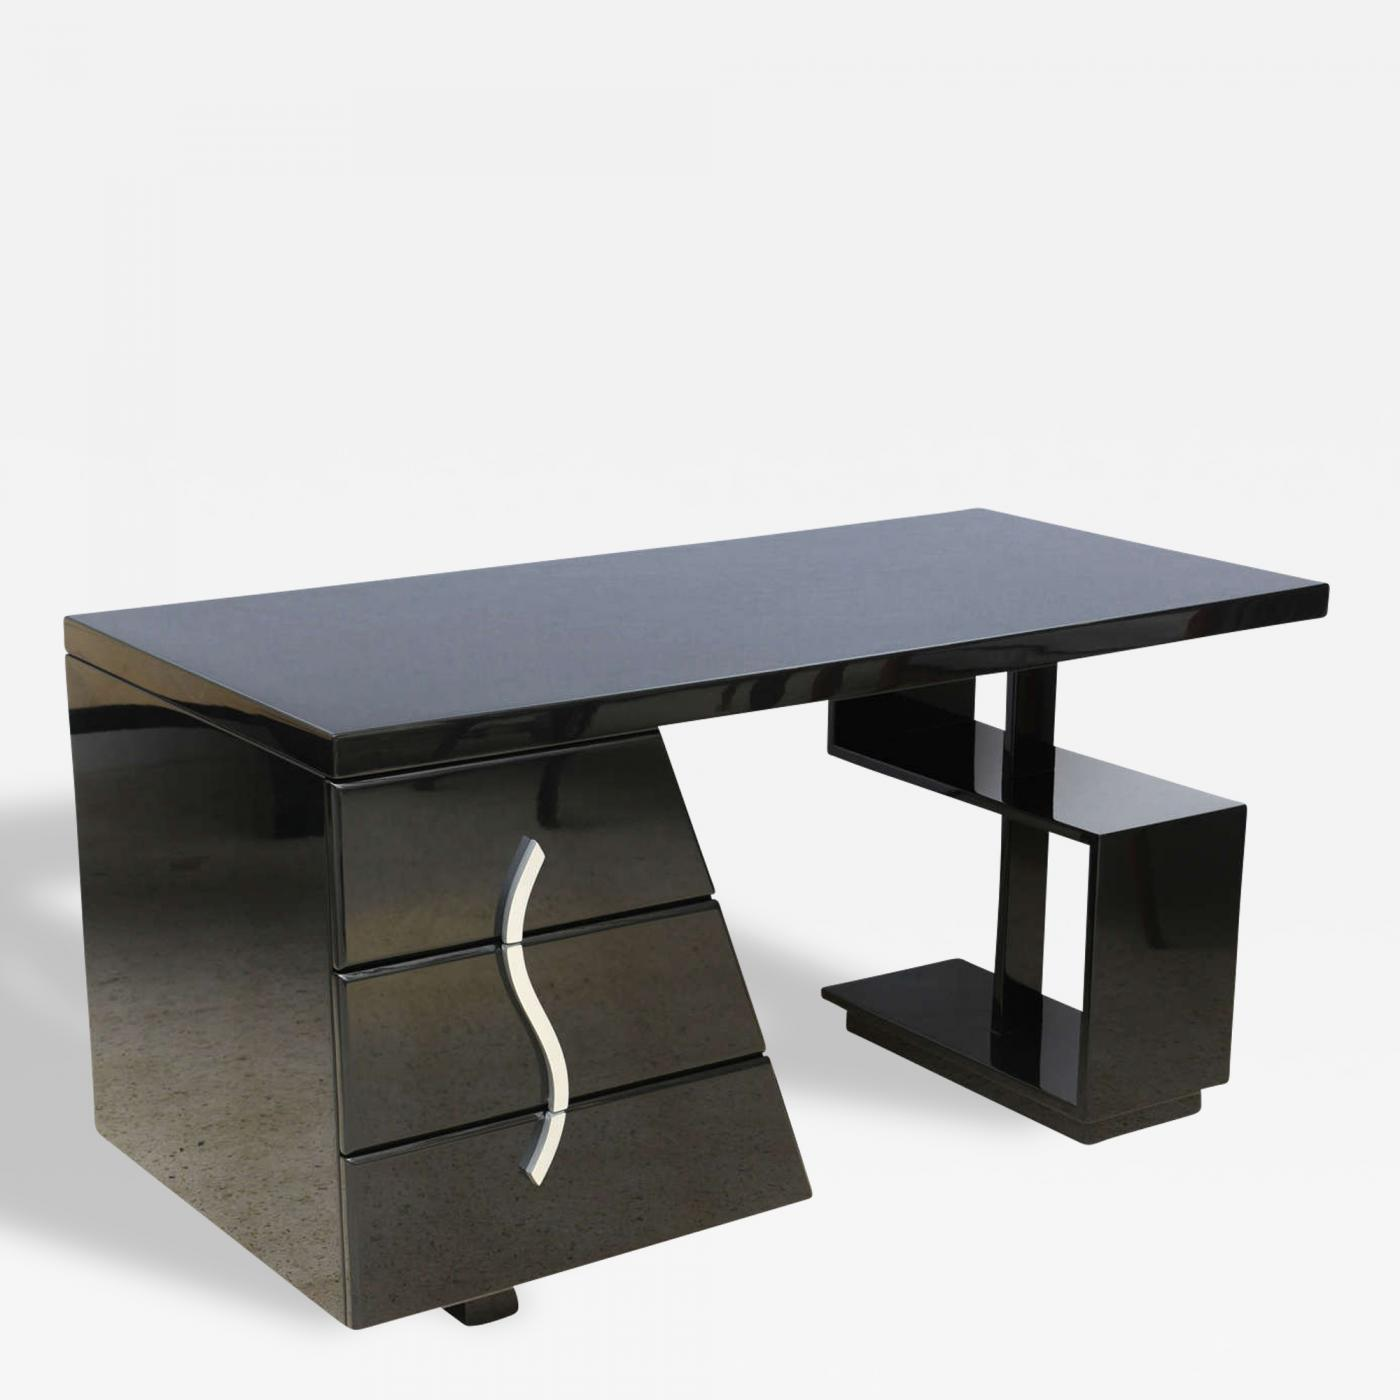 Paul T Frankl American Modern Black Lacquered Sculptural Desk